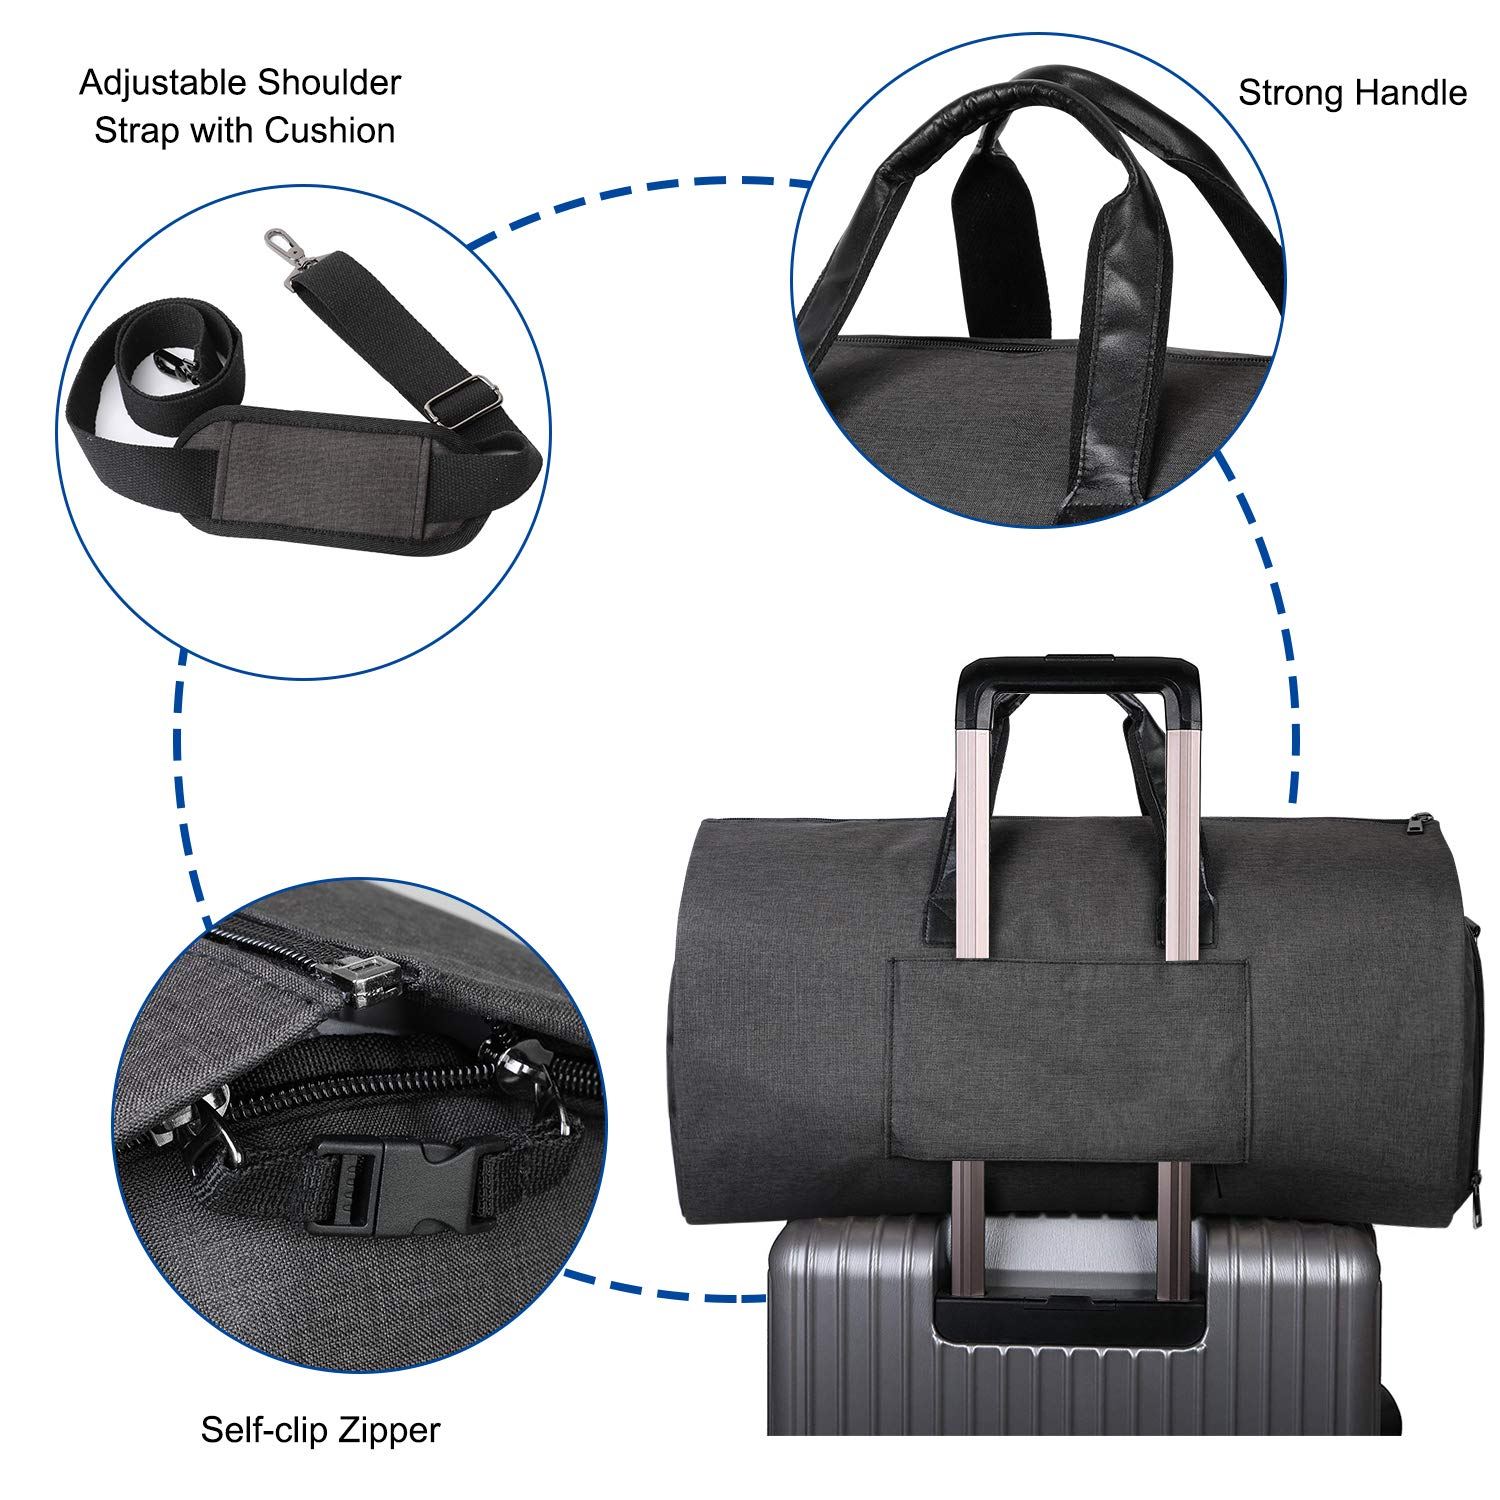 e37fedf3cd22 Water Resistance Convertible Suit Carry On Garment Bag Foldable Luggage  Duffle Bag